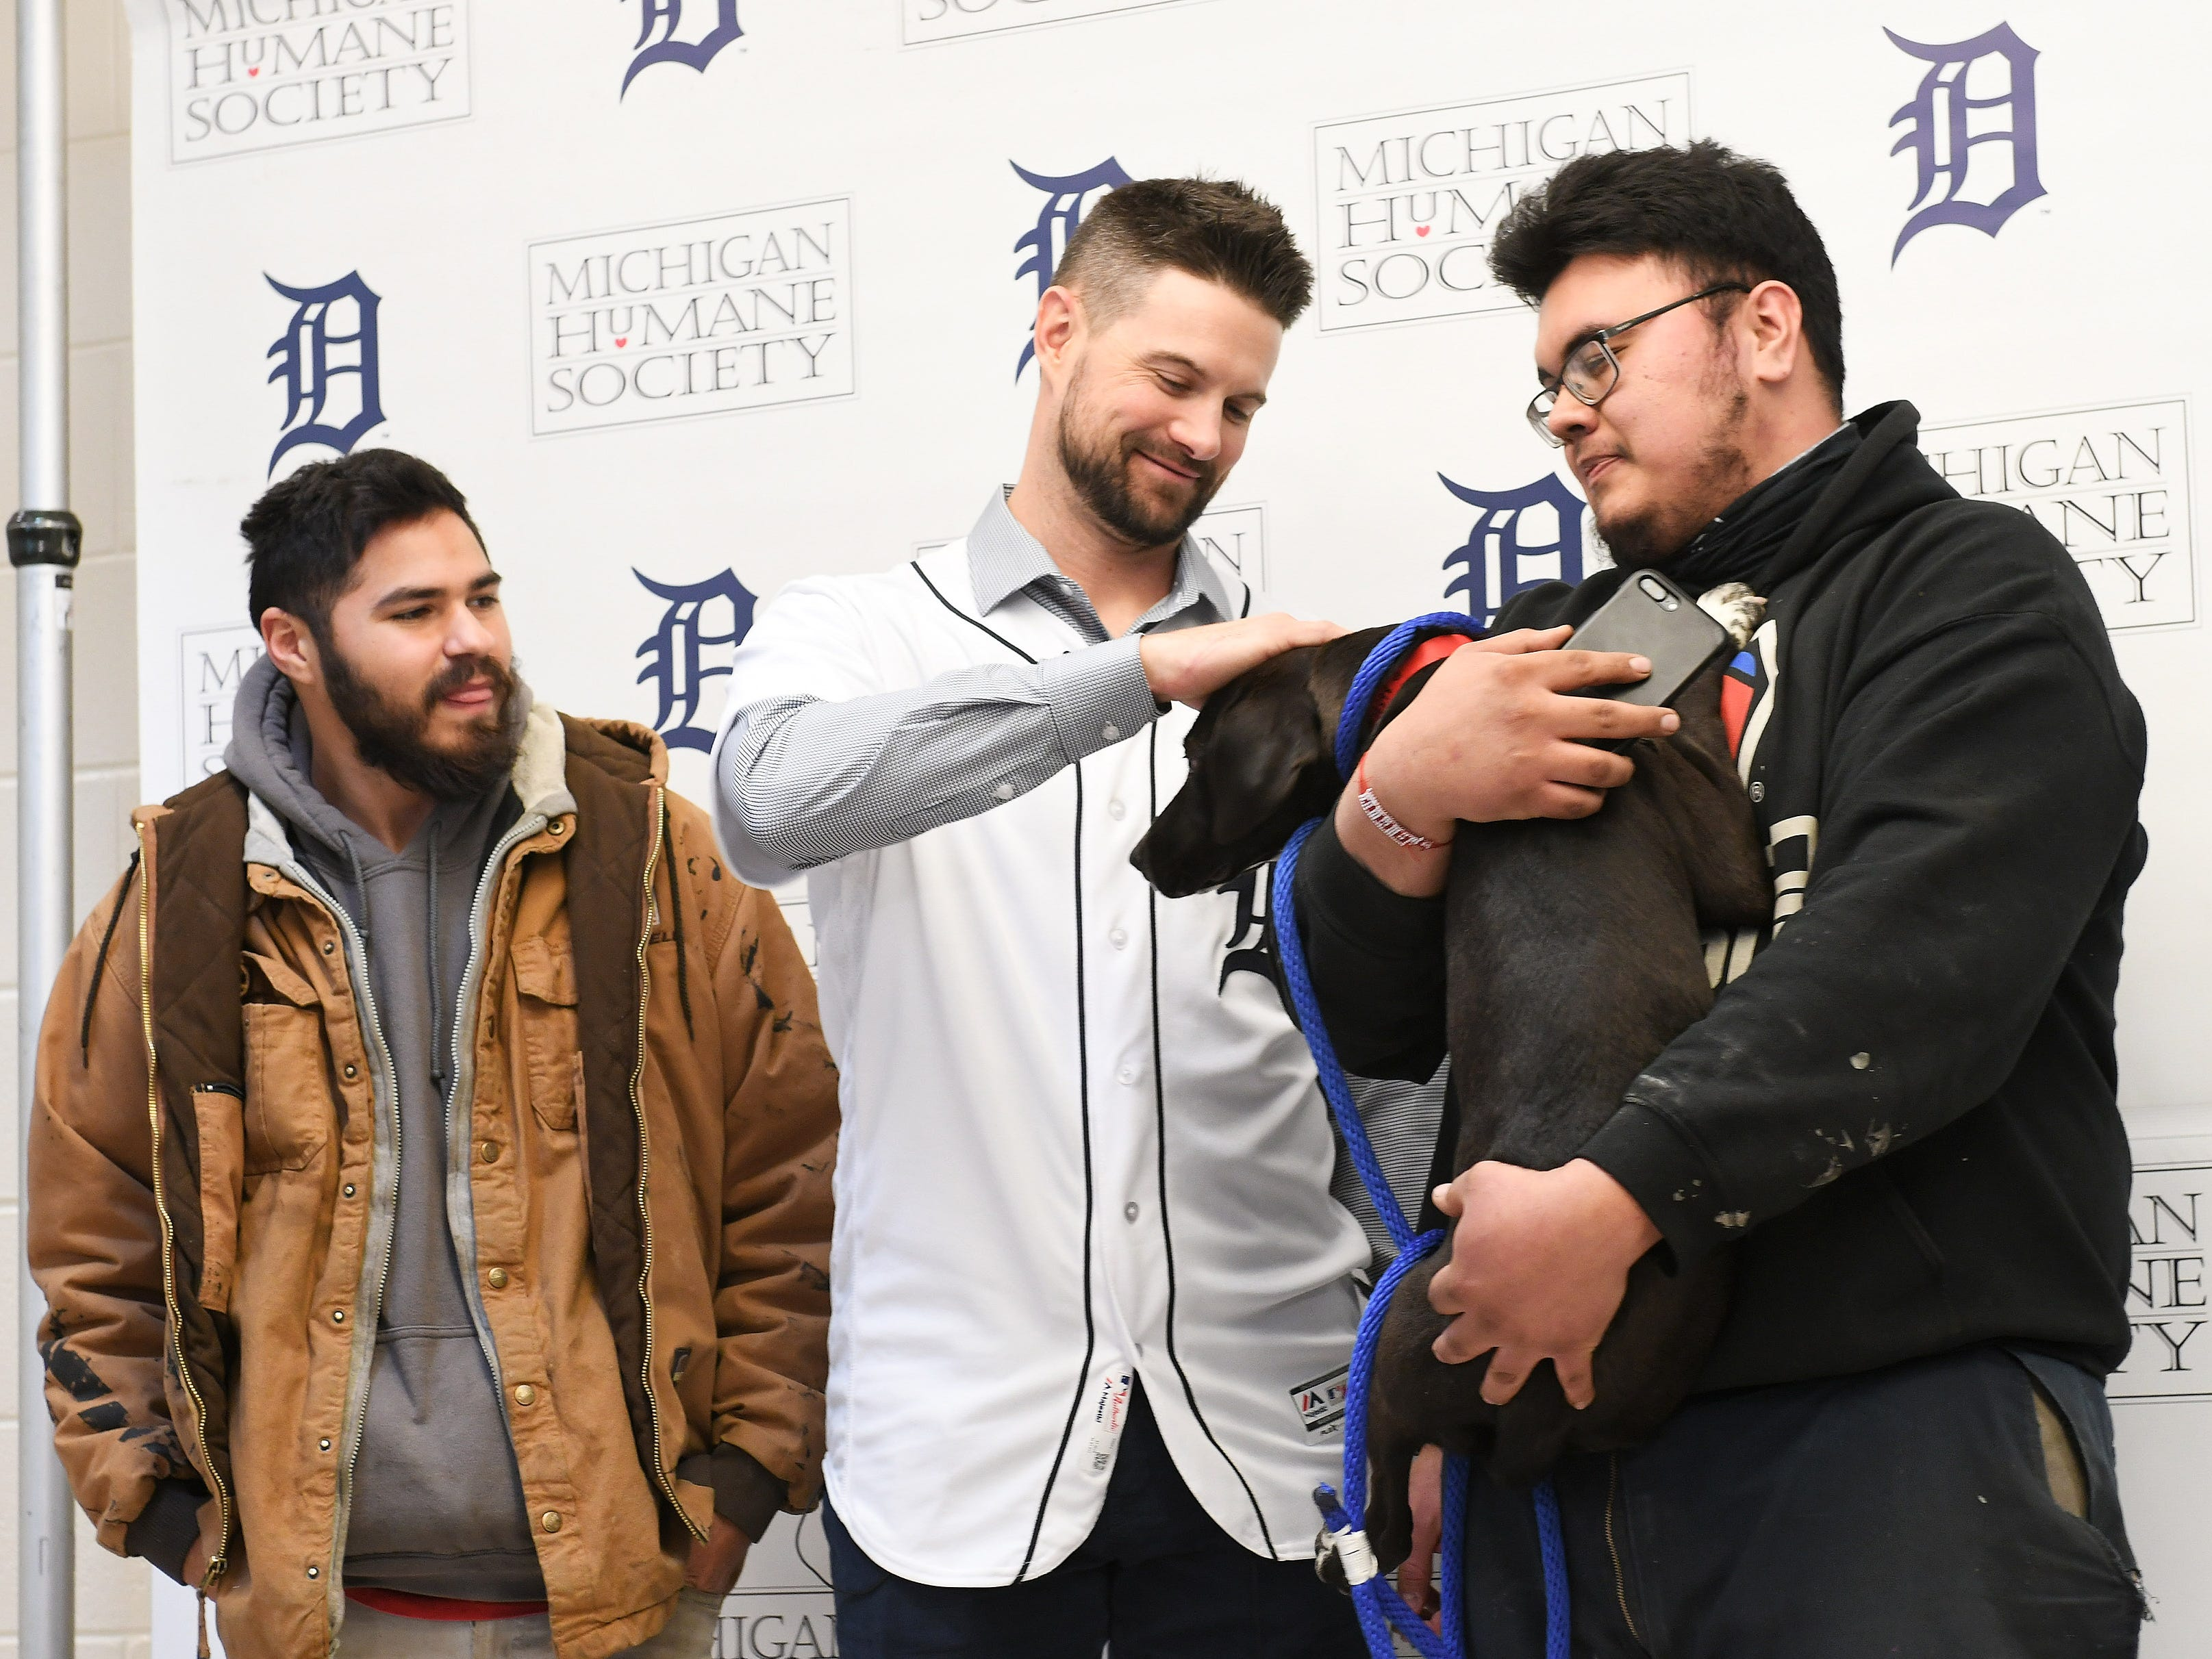 Tigers shortstop Jordy Mercer pets Lark who is being adopted by Marcelo Alvarado, 24, of Detroit, right, 25, with Marcelo's cousin, Gabriel Angel 25, left, at the Michigan Humane Society.